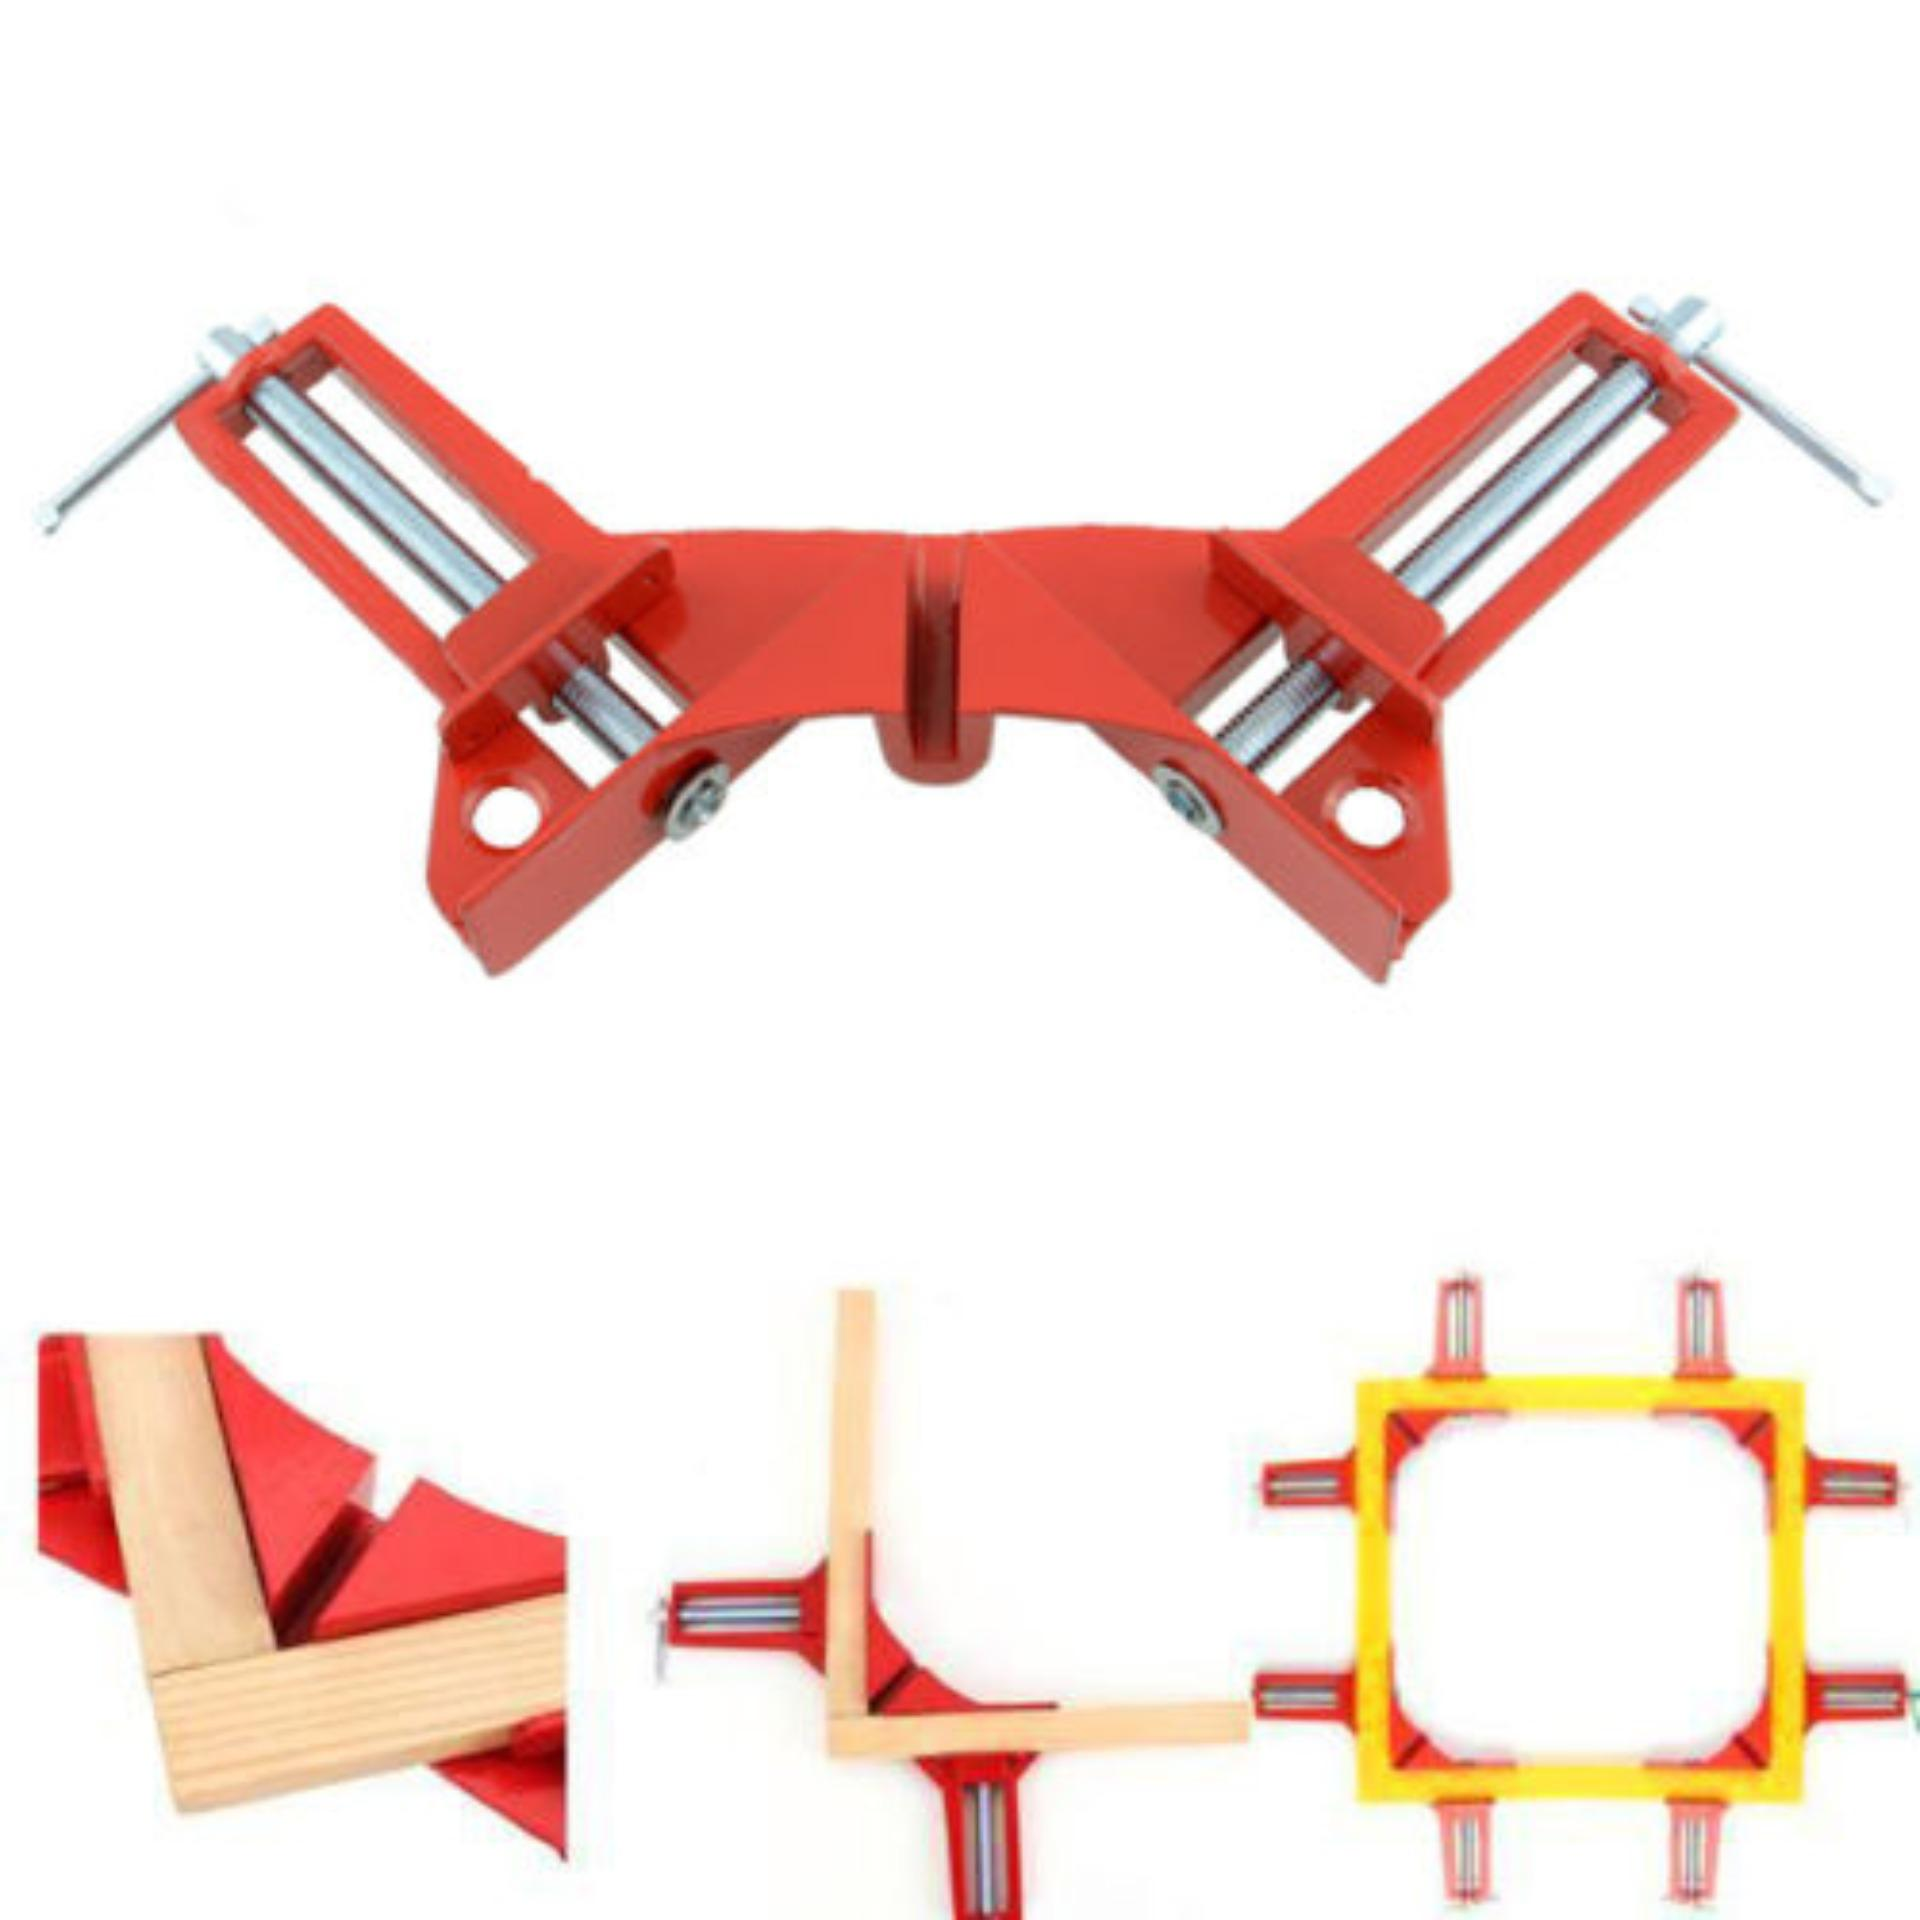 4pcs 75mm Corner And Mitre Frame Holders Woodwork 90 Degree Right Angle 4 Clamps - intl